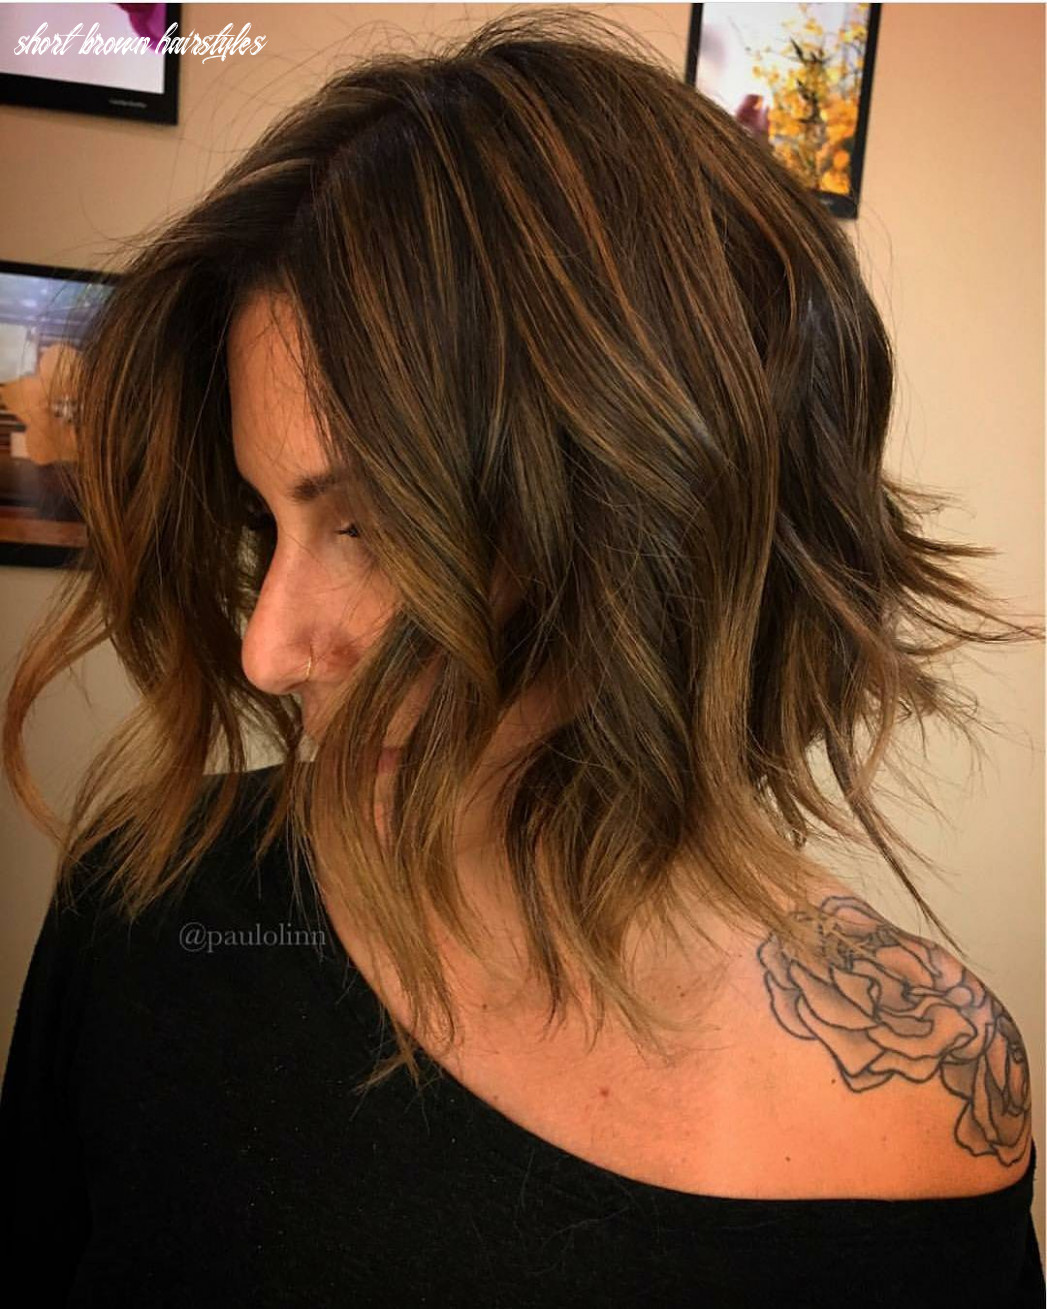 9 short brown hairstyles with fizz, short short brown hairstyles